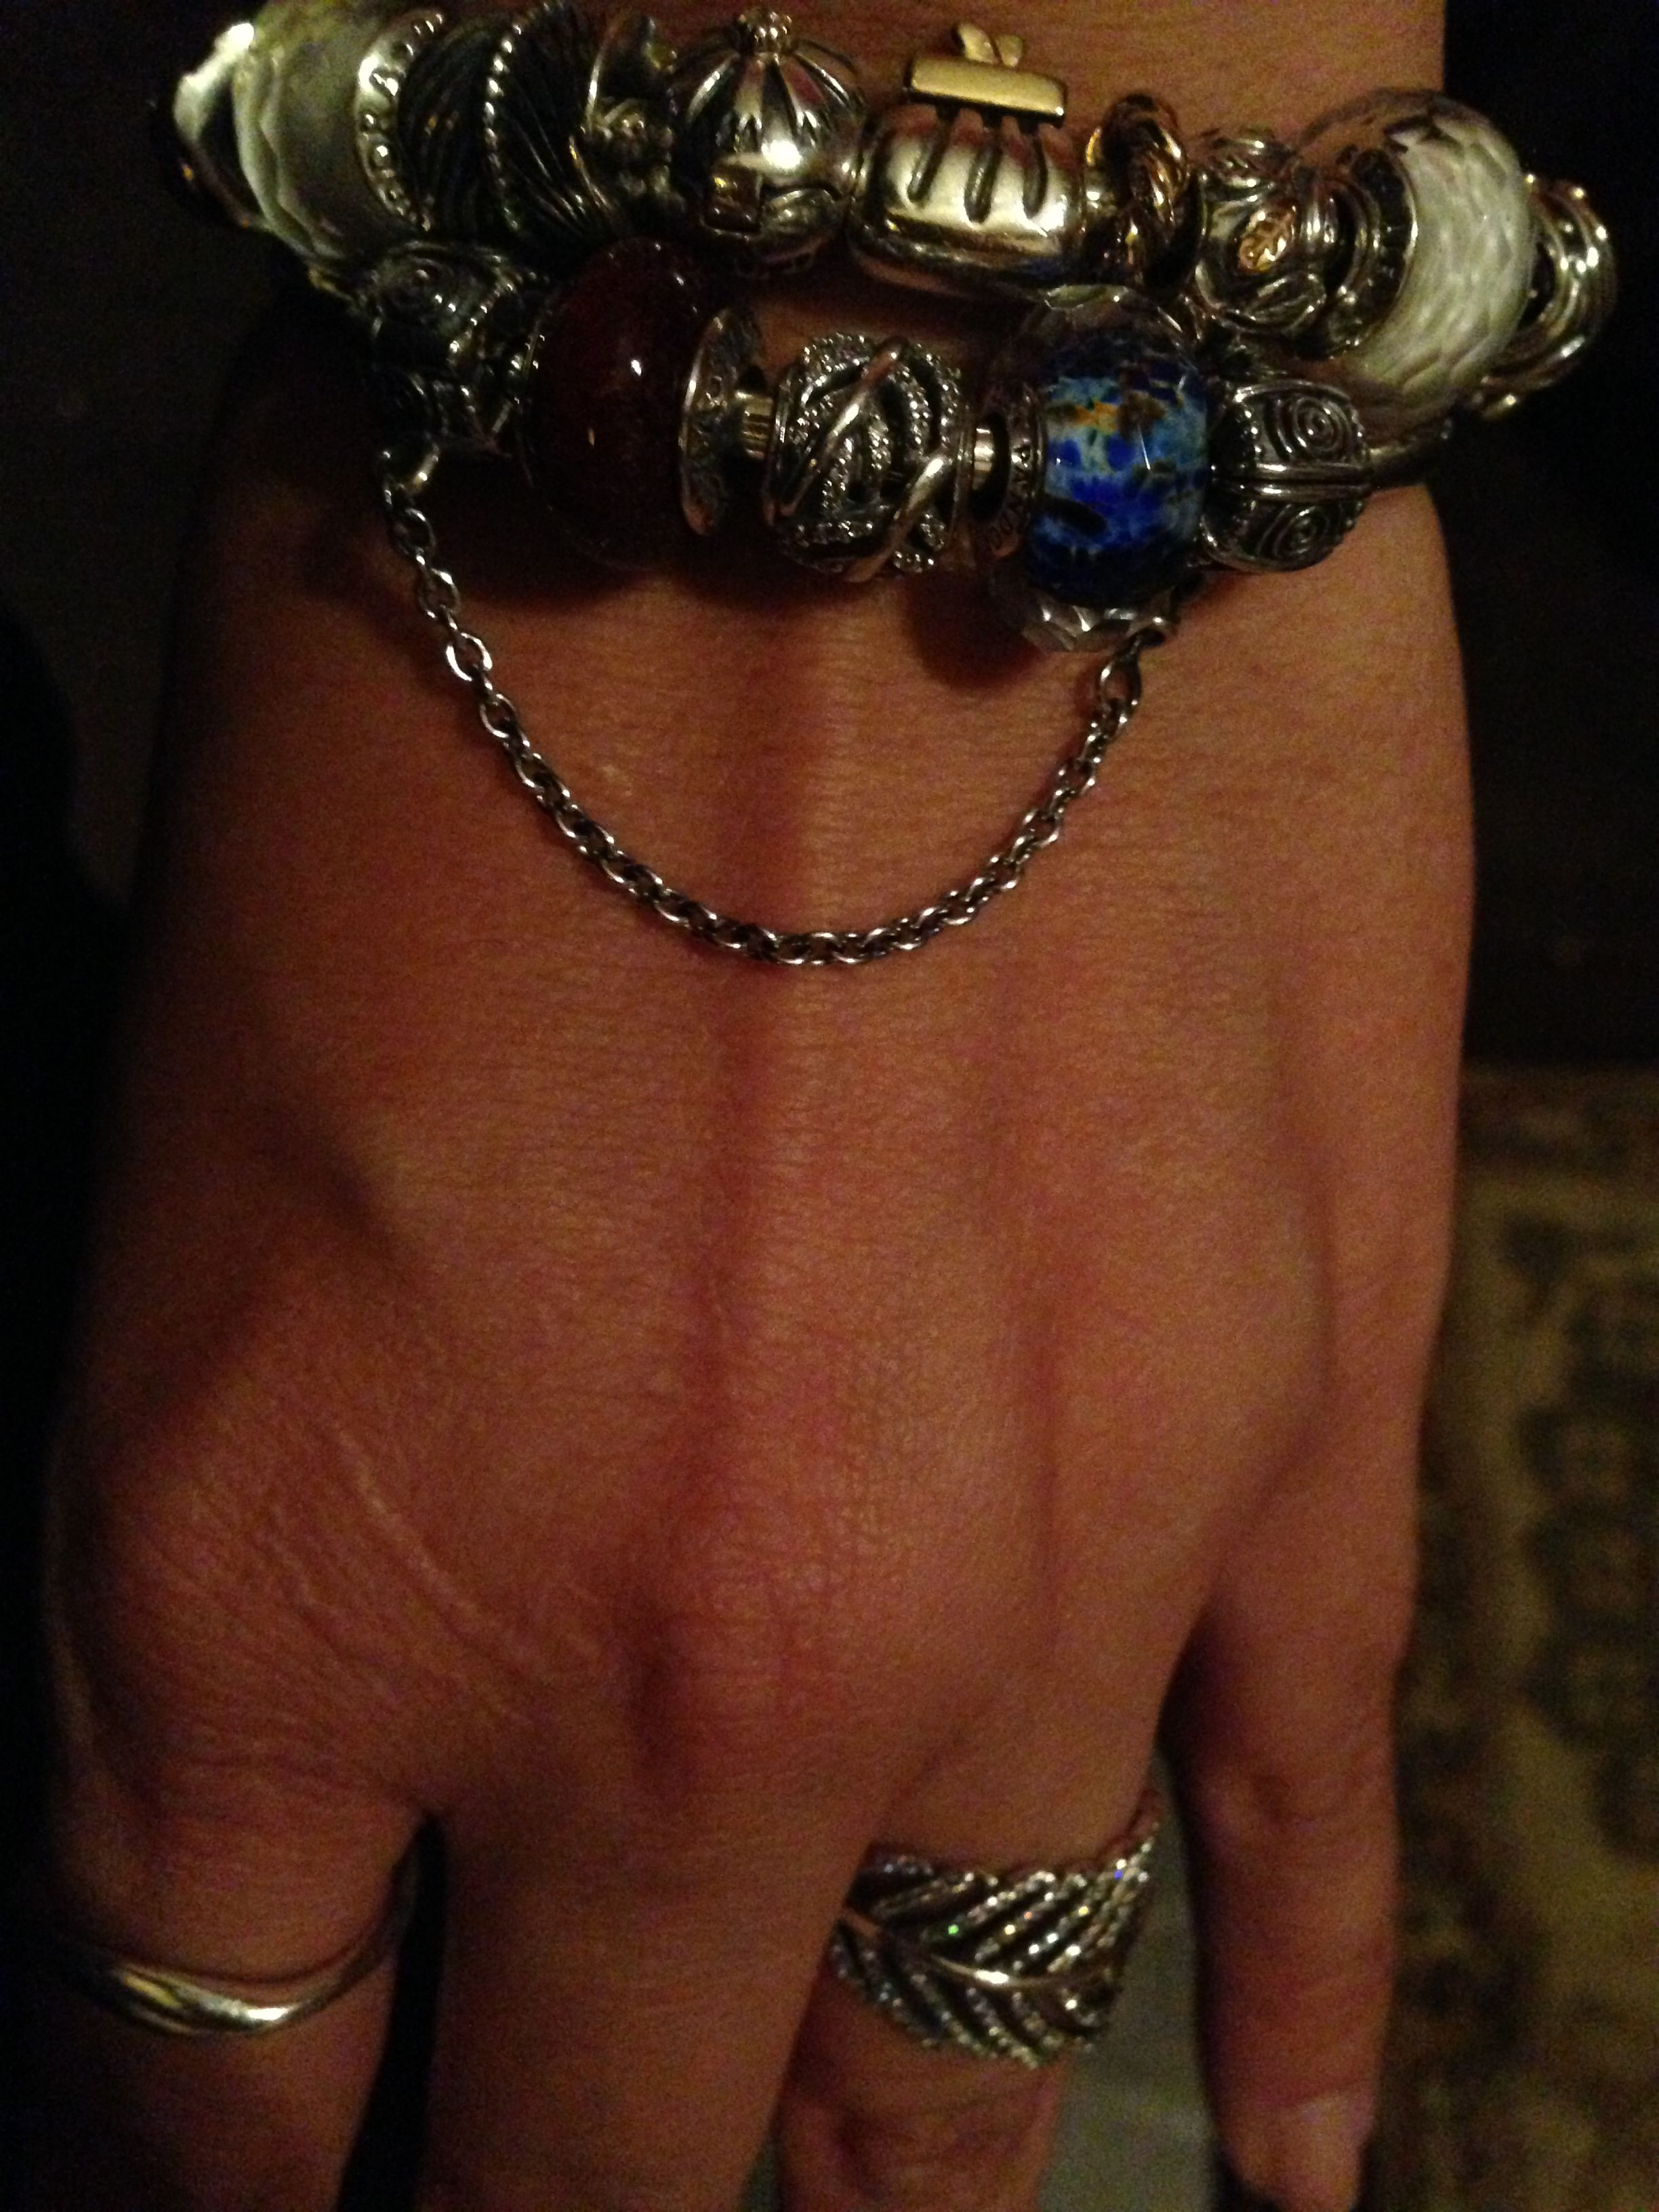 Added a chain to my bangle and I'm loving it! Not to mention my new feather charm and ring :-)